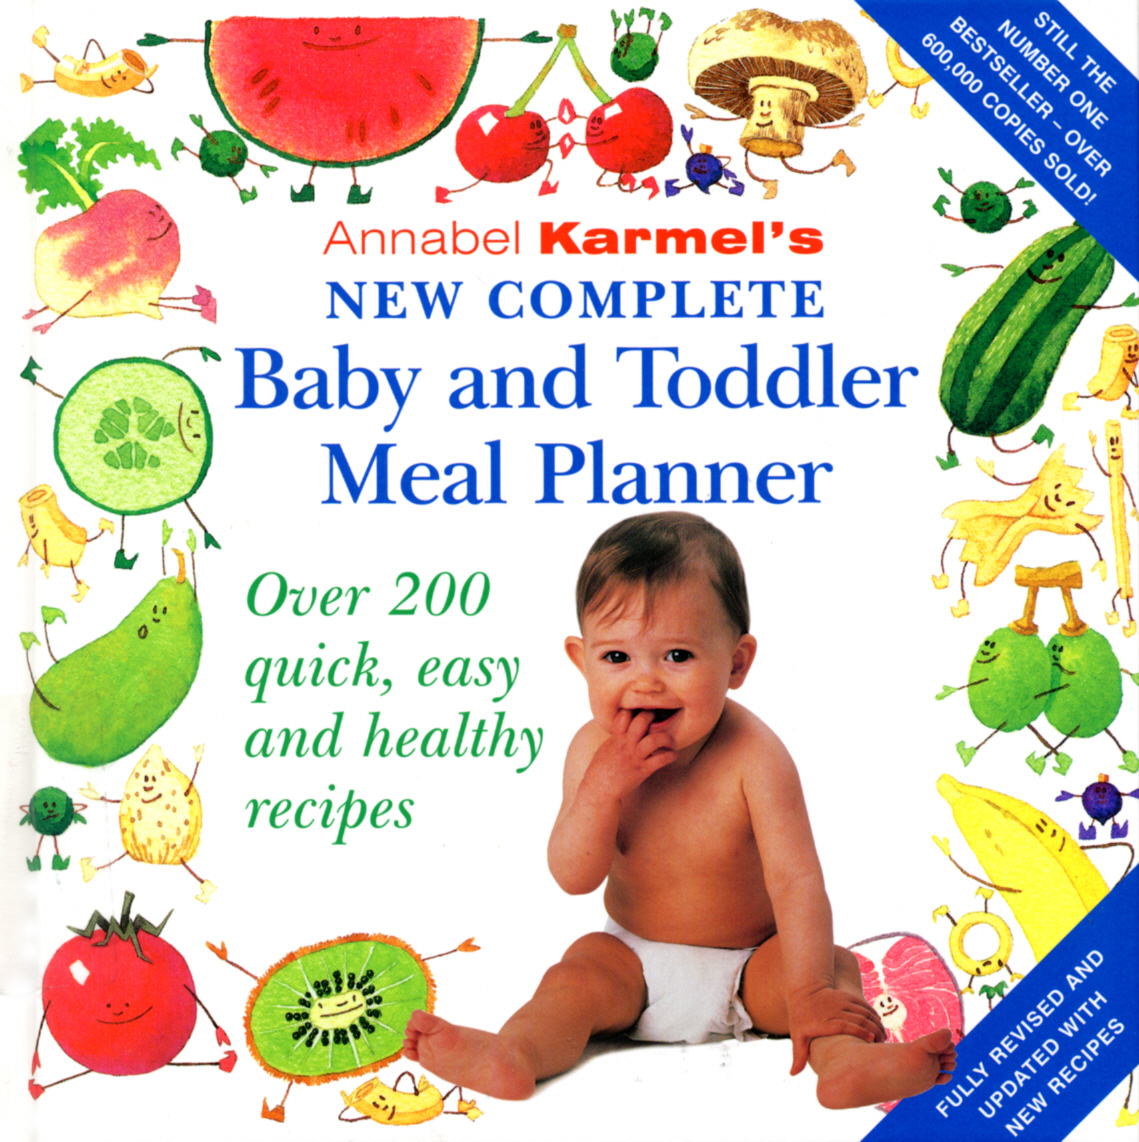 Annabel Karmel's New Complete Baby & Toddler Meal Planner - 4th Edition your first atlantic crossing 4th edition